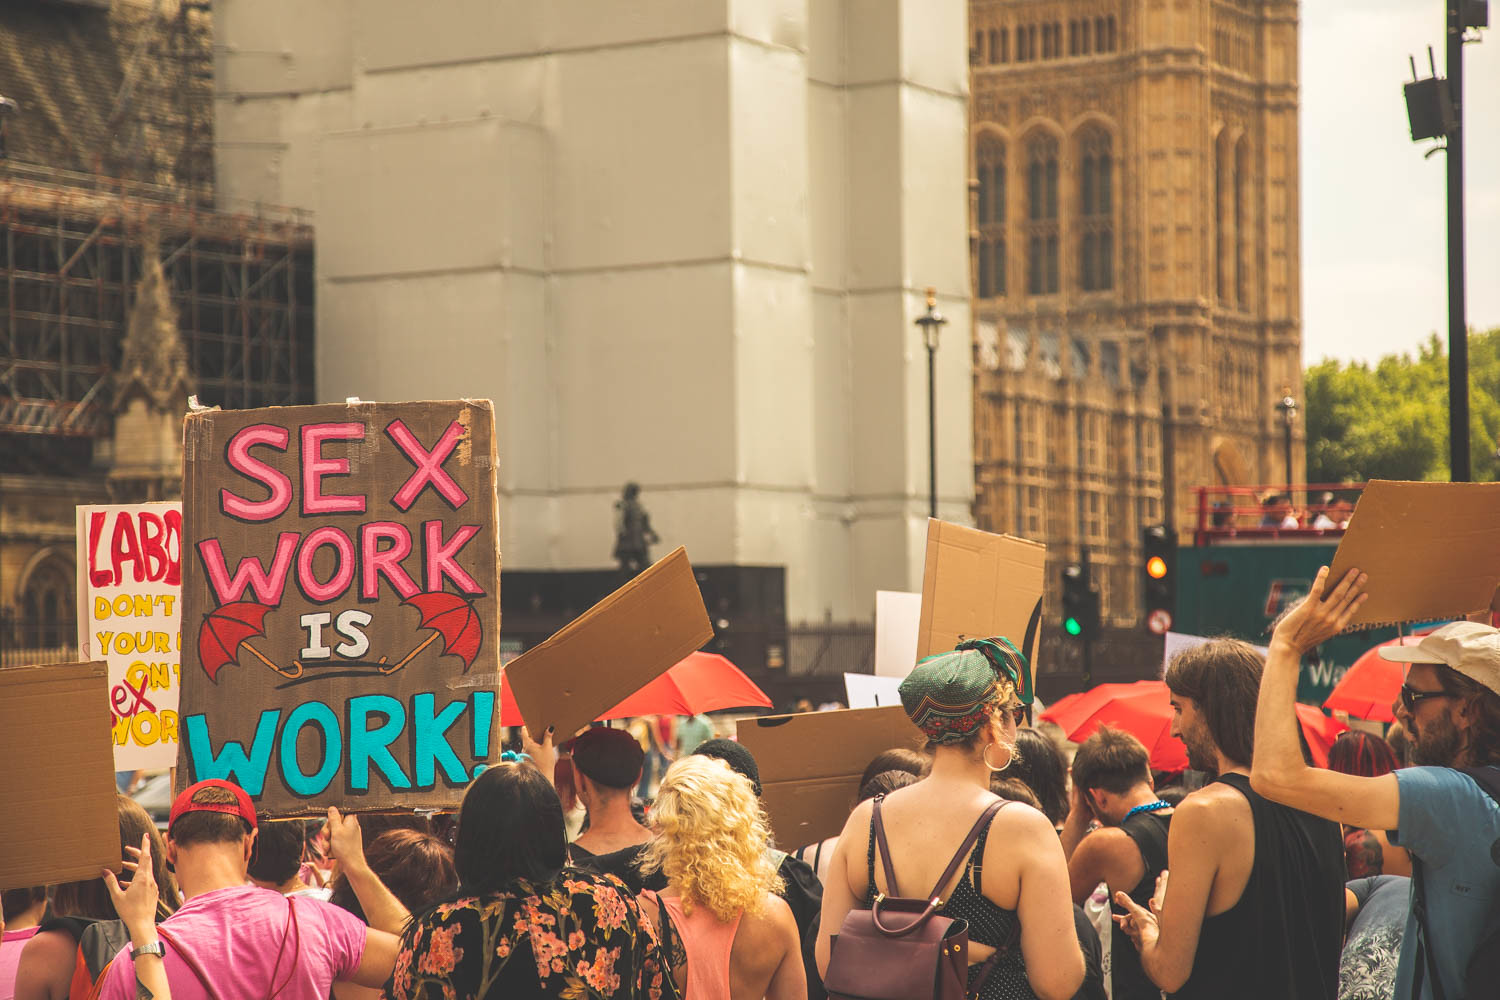 Why The Sexual Exploitation Bill Will Make Vulnerable Women Less Safe